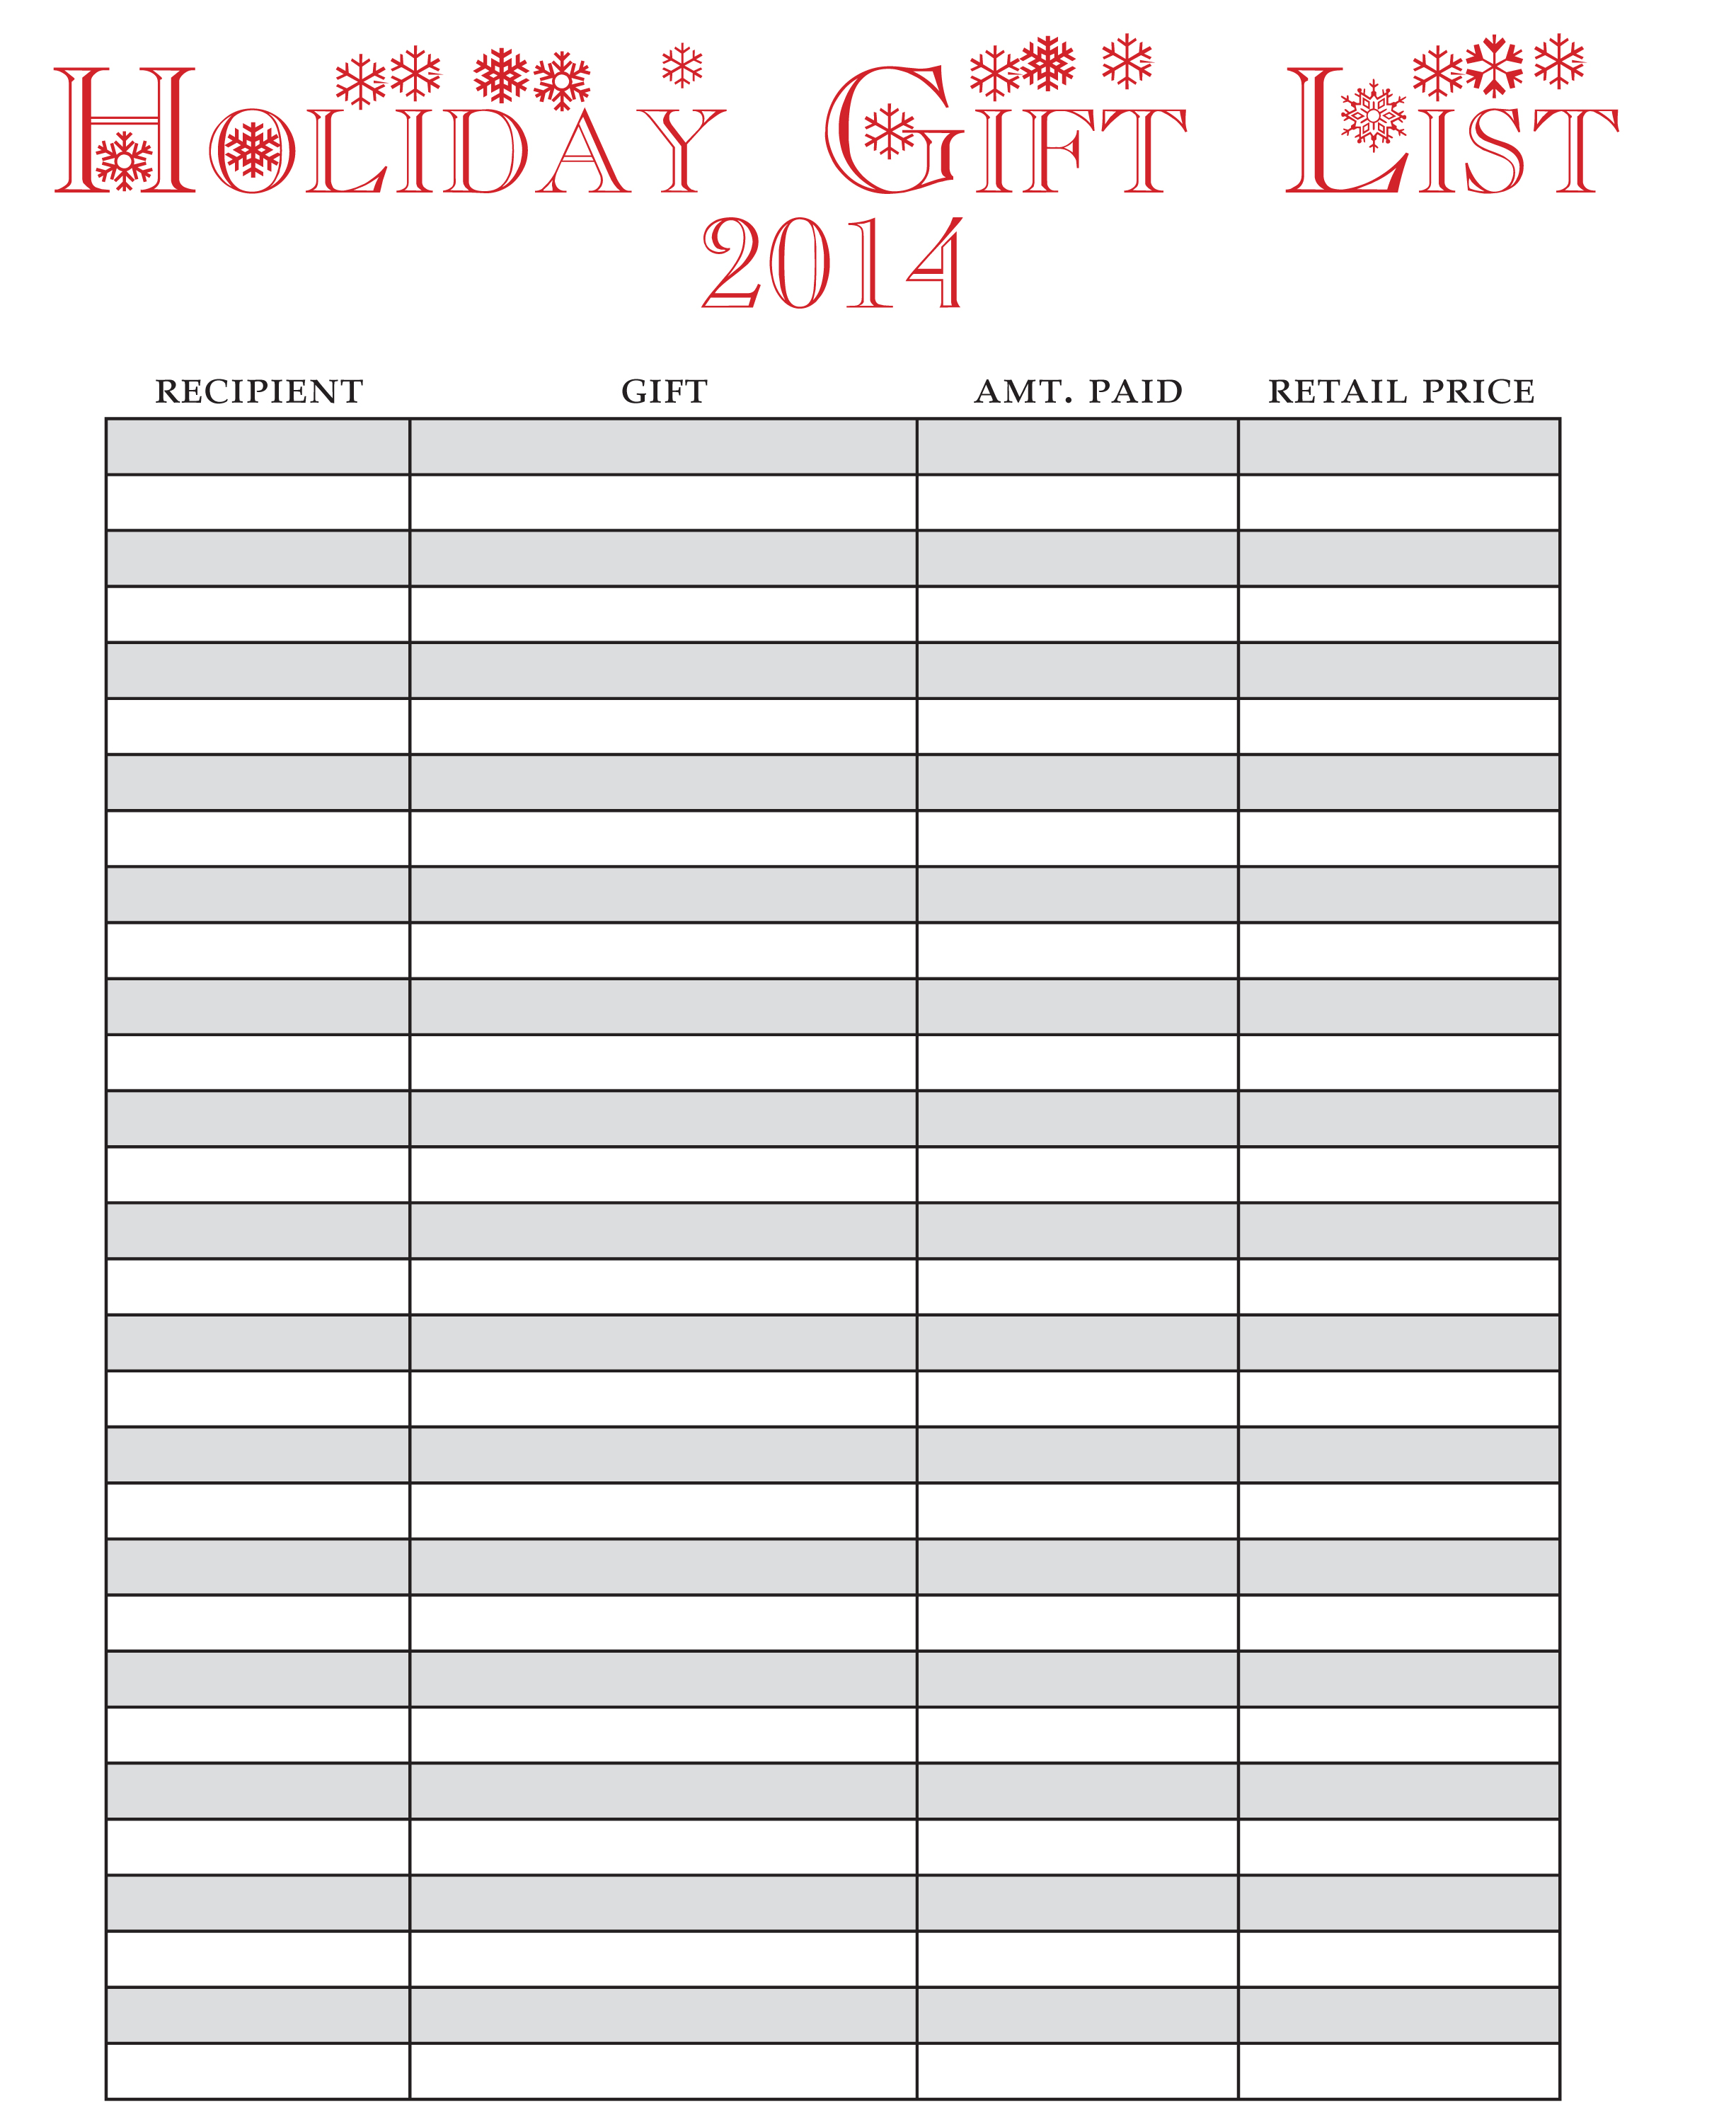 holiday gift list image - Christmas Lists 2014